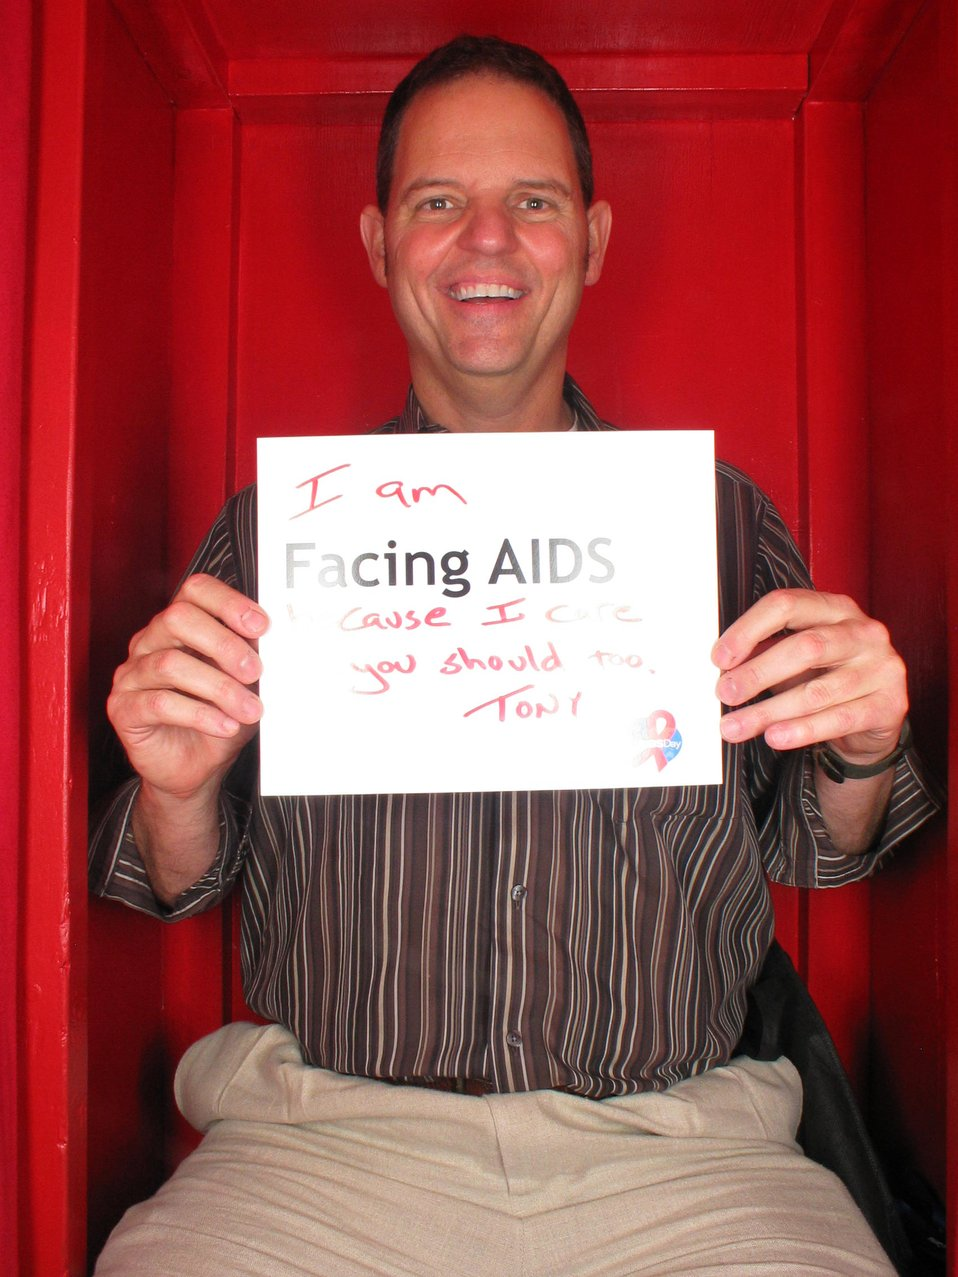 I am Facing AIDS because I care and you should too!